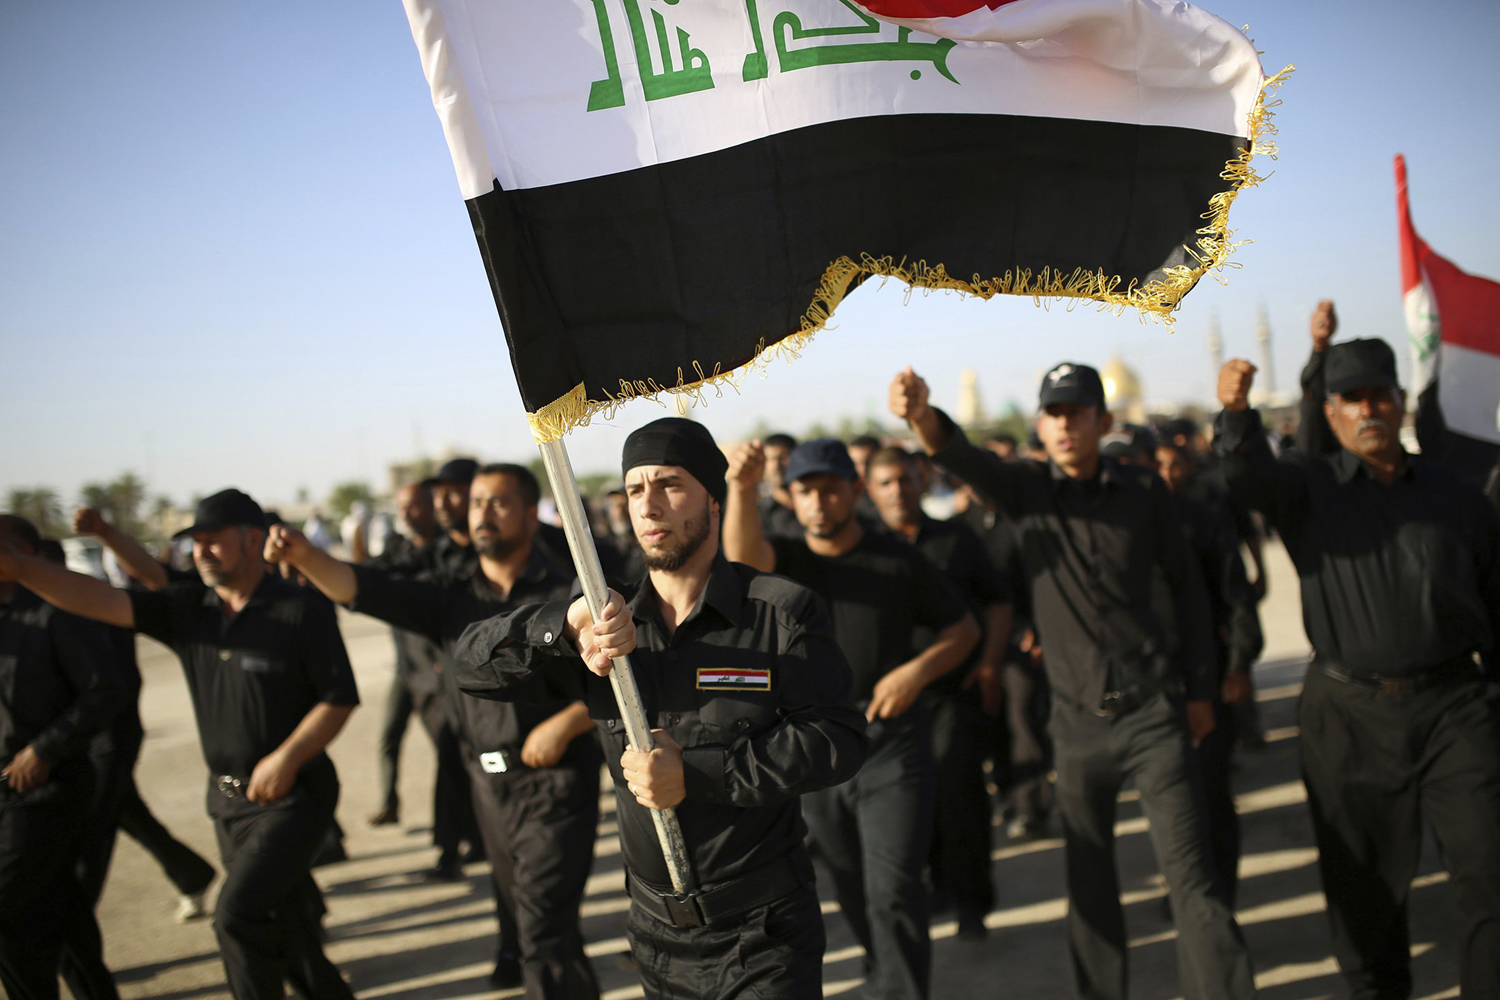 Mehdi Army fighters loyal to Shiite cleric Moqtada al-Sadr march during a military-style training in the holy city of Najaf, June 17.